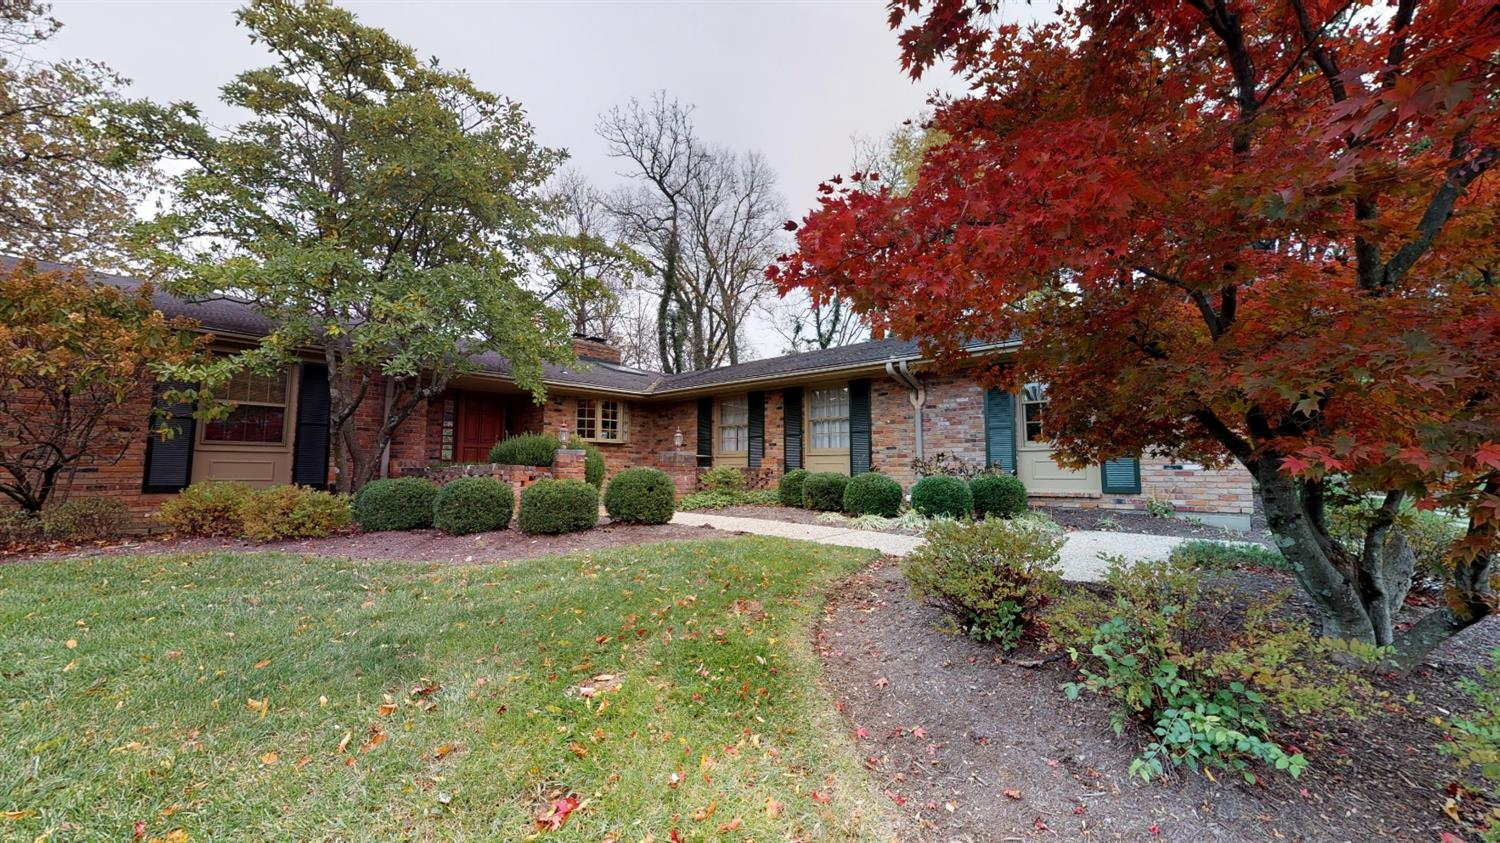 Property for sale at 166 Brocdorf Drive, Wyoming,  Ohio 45215